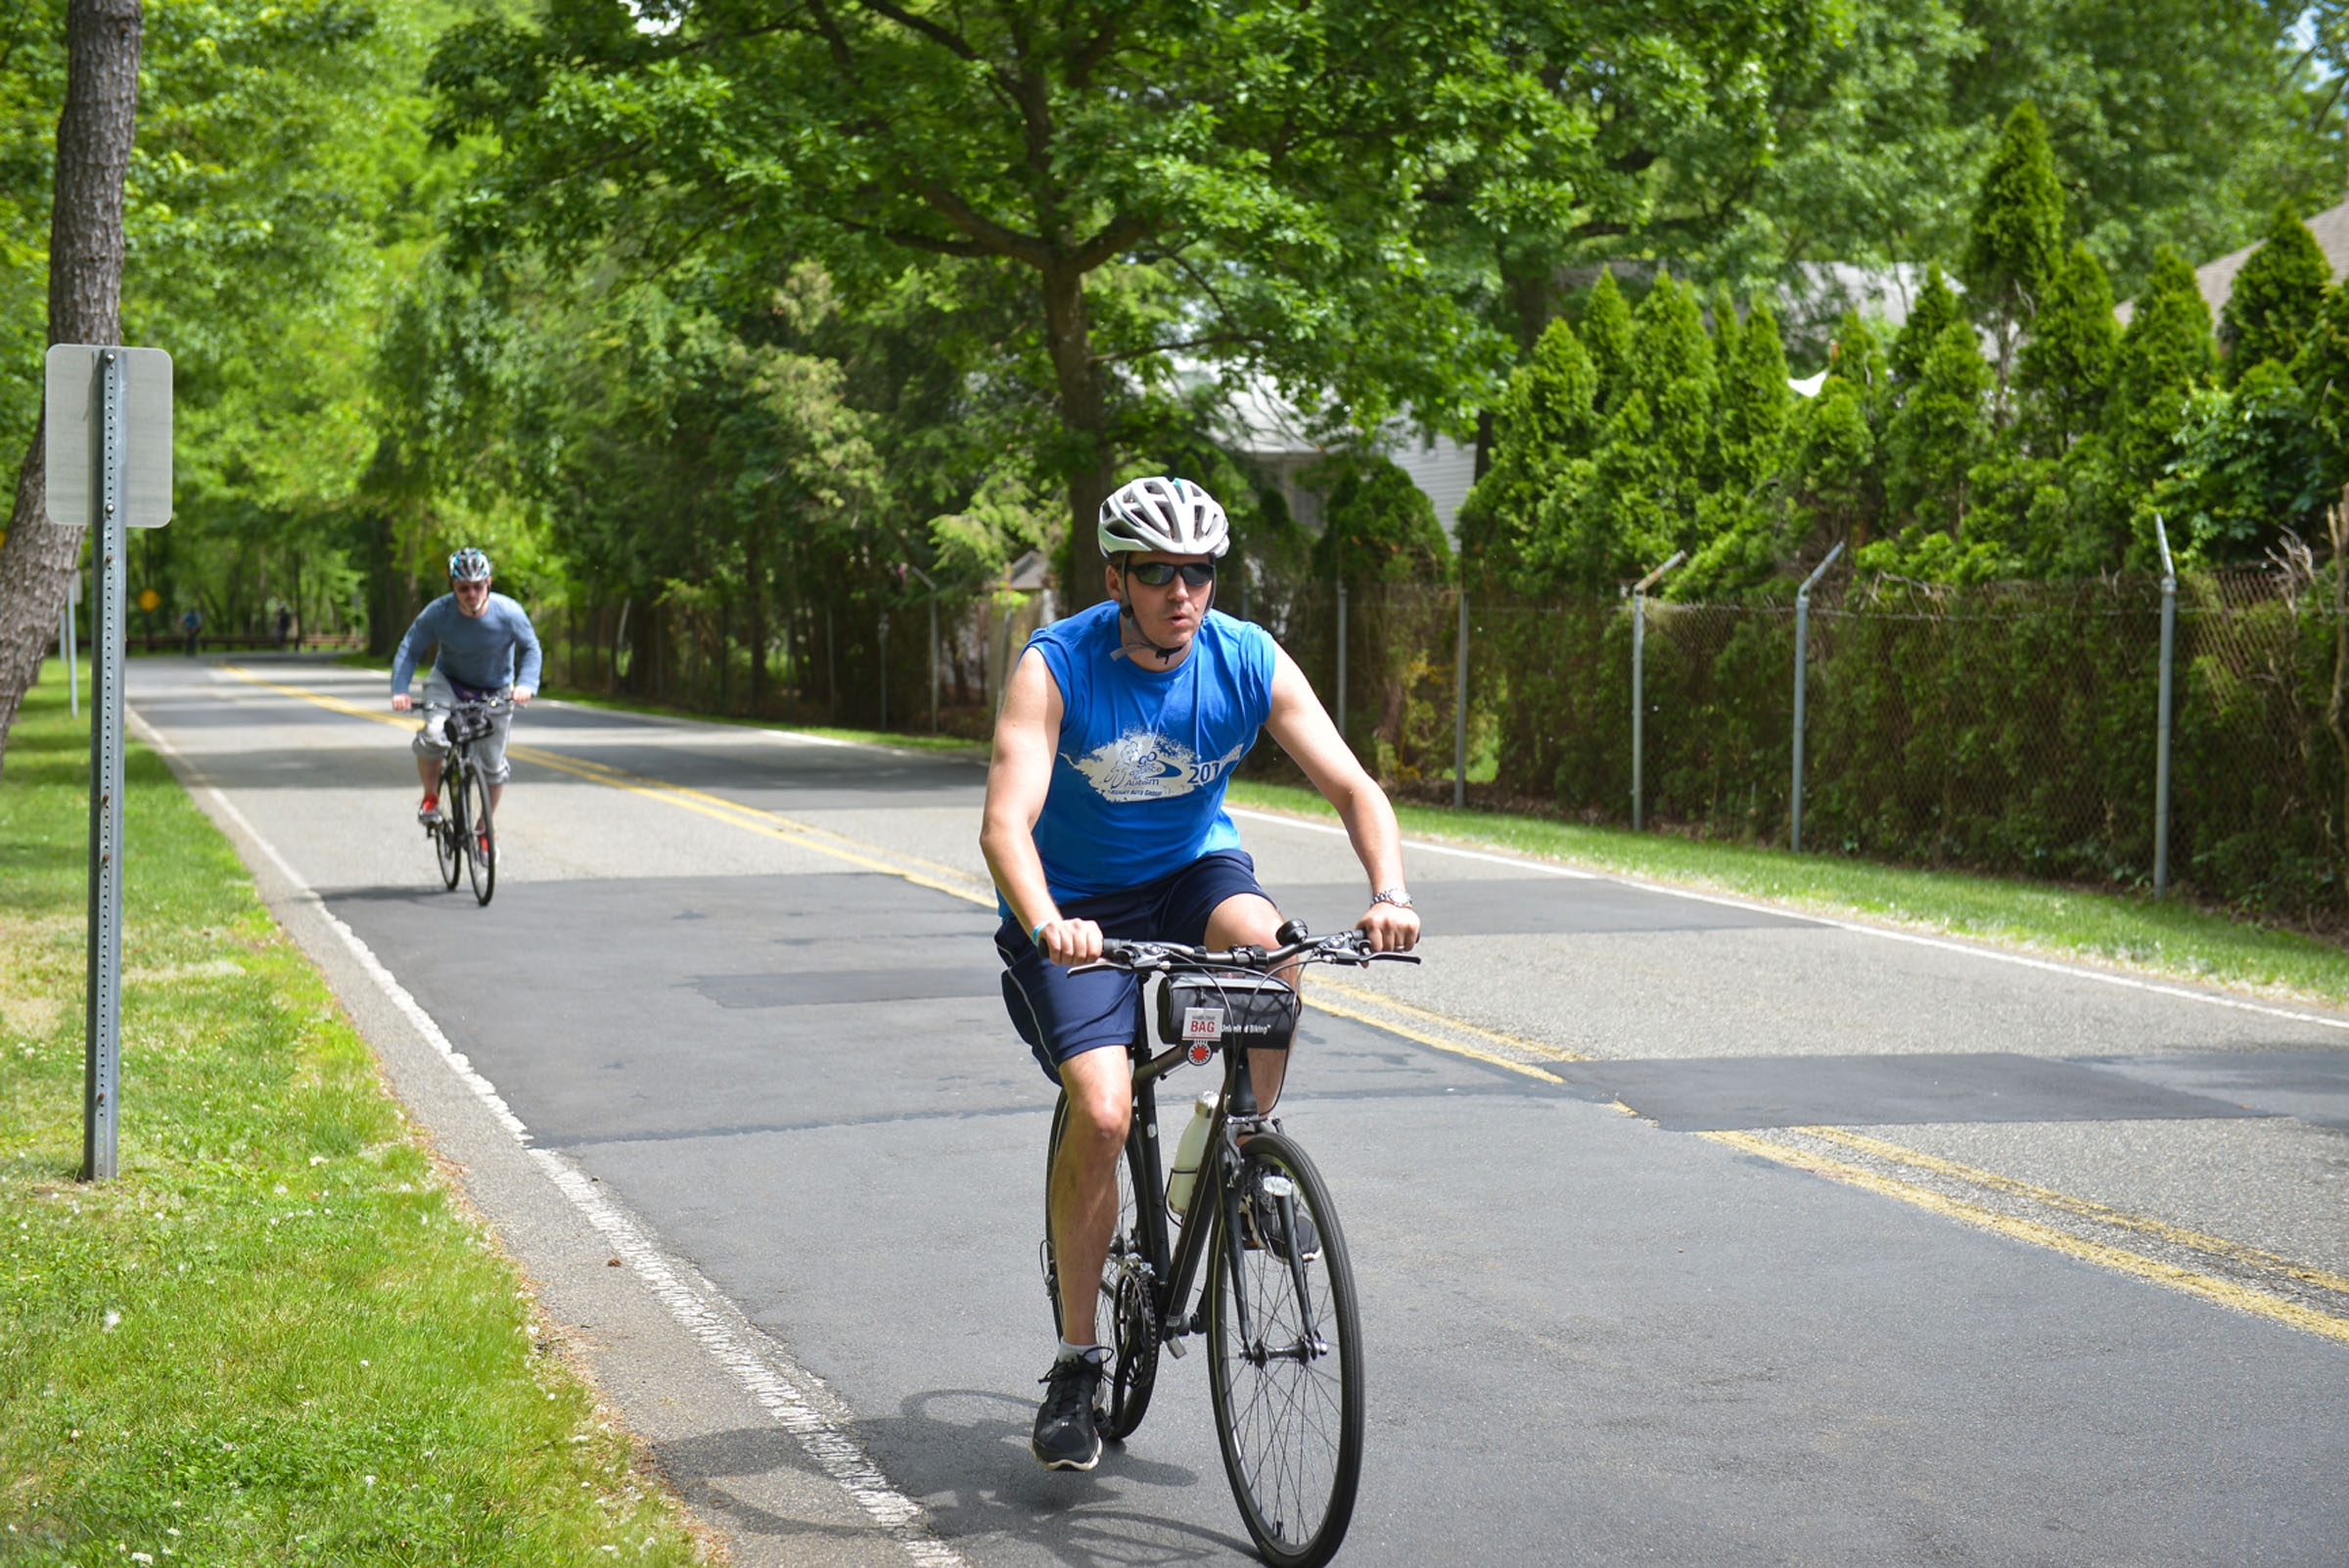 2017-06-04 GTD4A Charity Bike Ride - BCC - Paramus NJ-2375.jpg